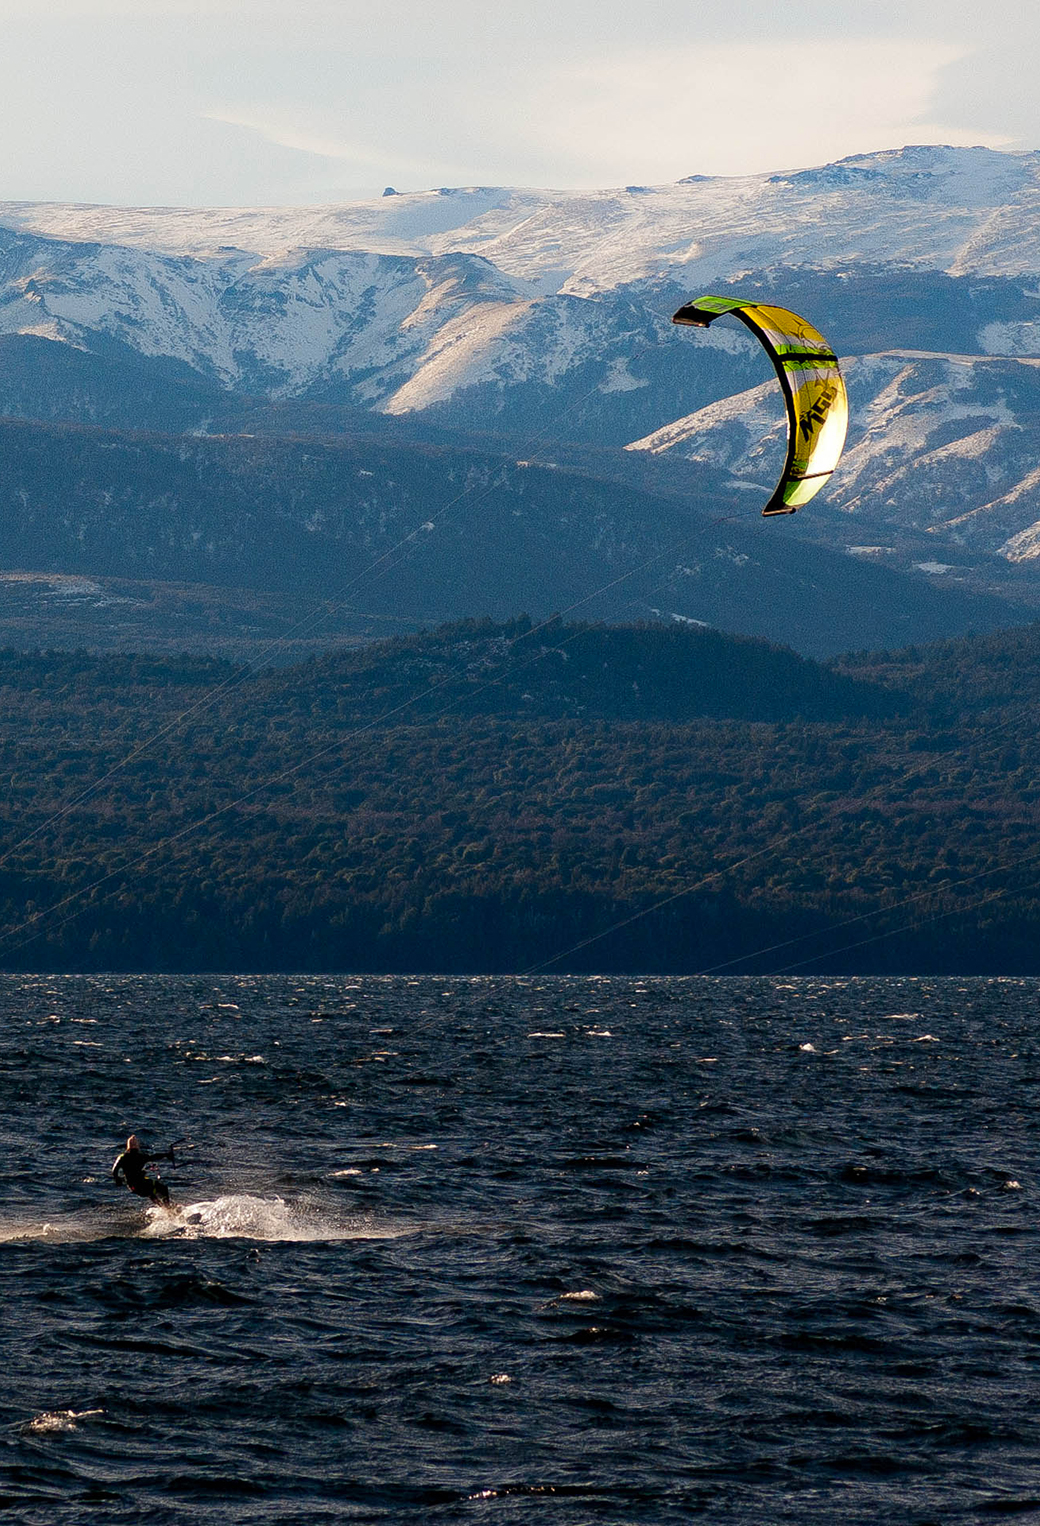 Winter kite surfing 3Wallpapers iPhone Parallax Winter kite surfing